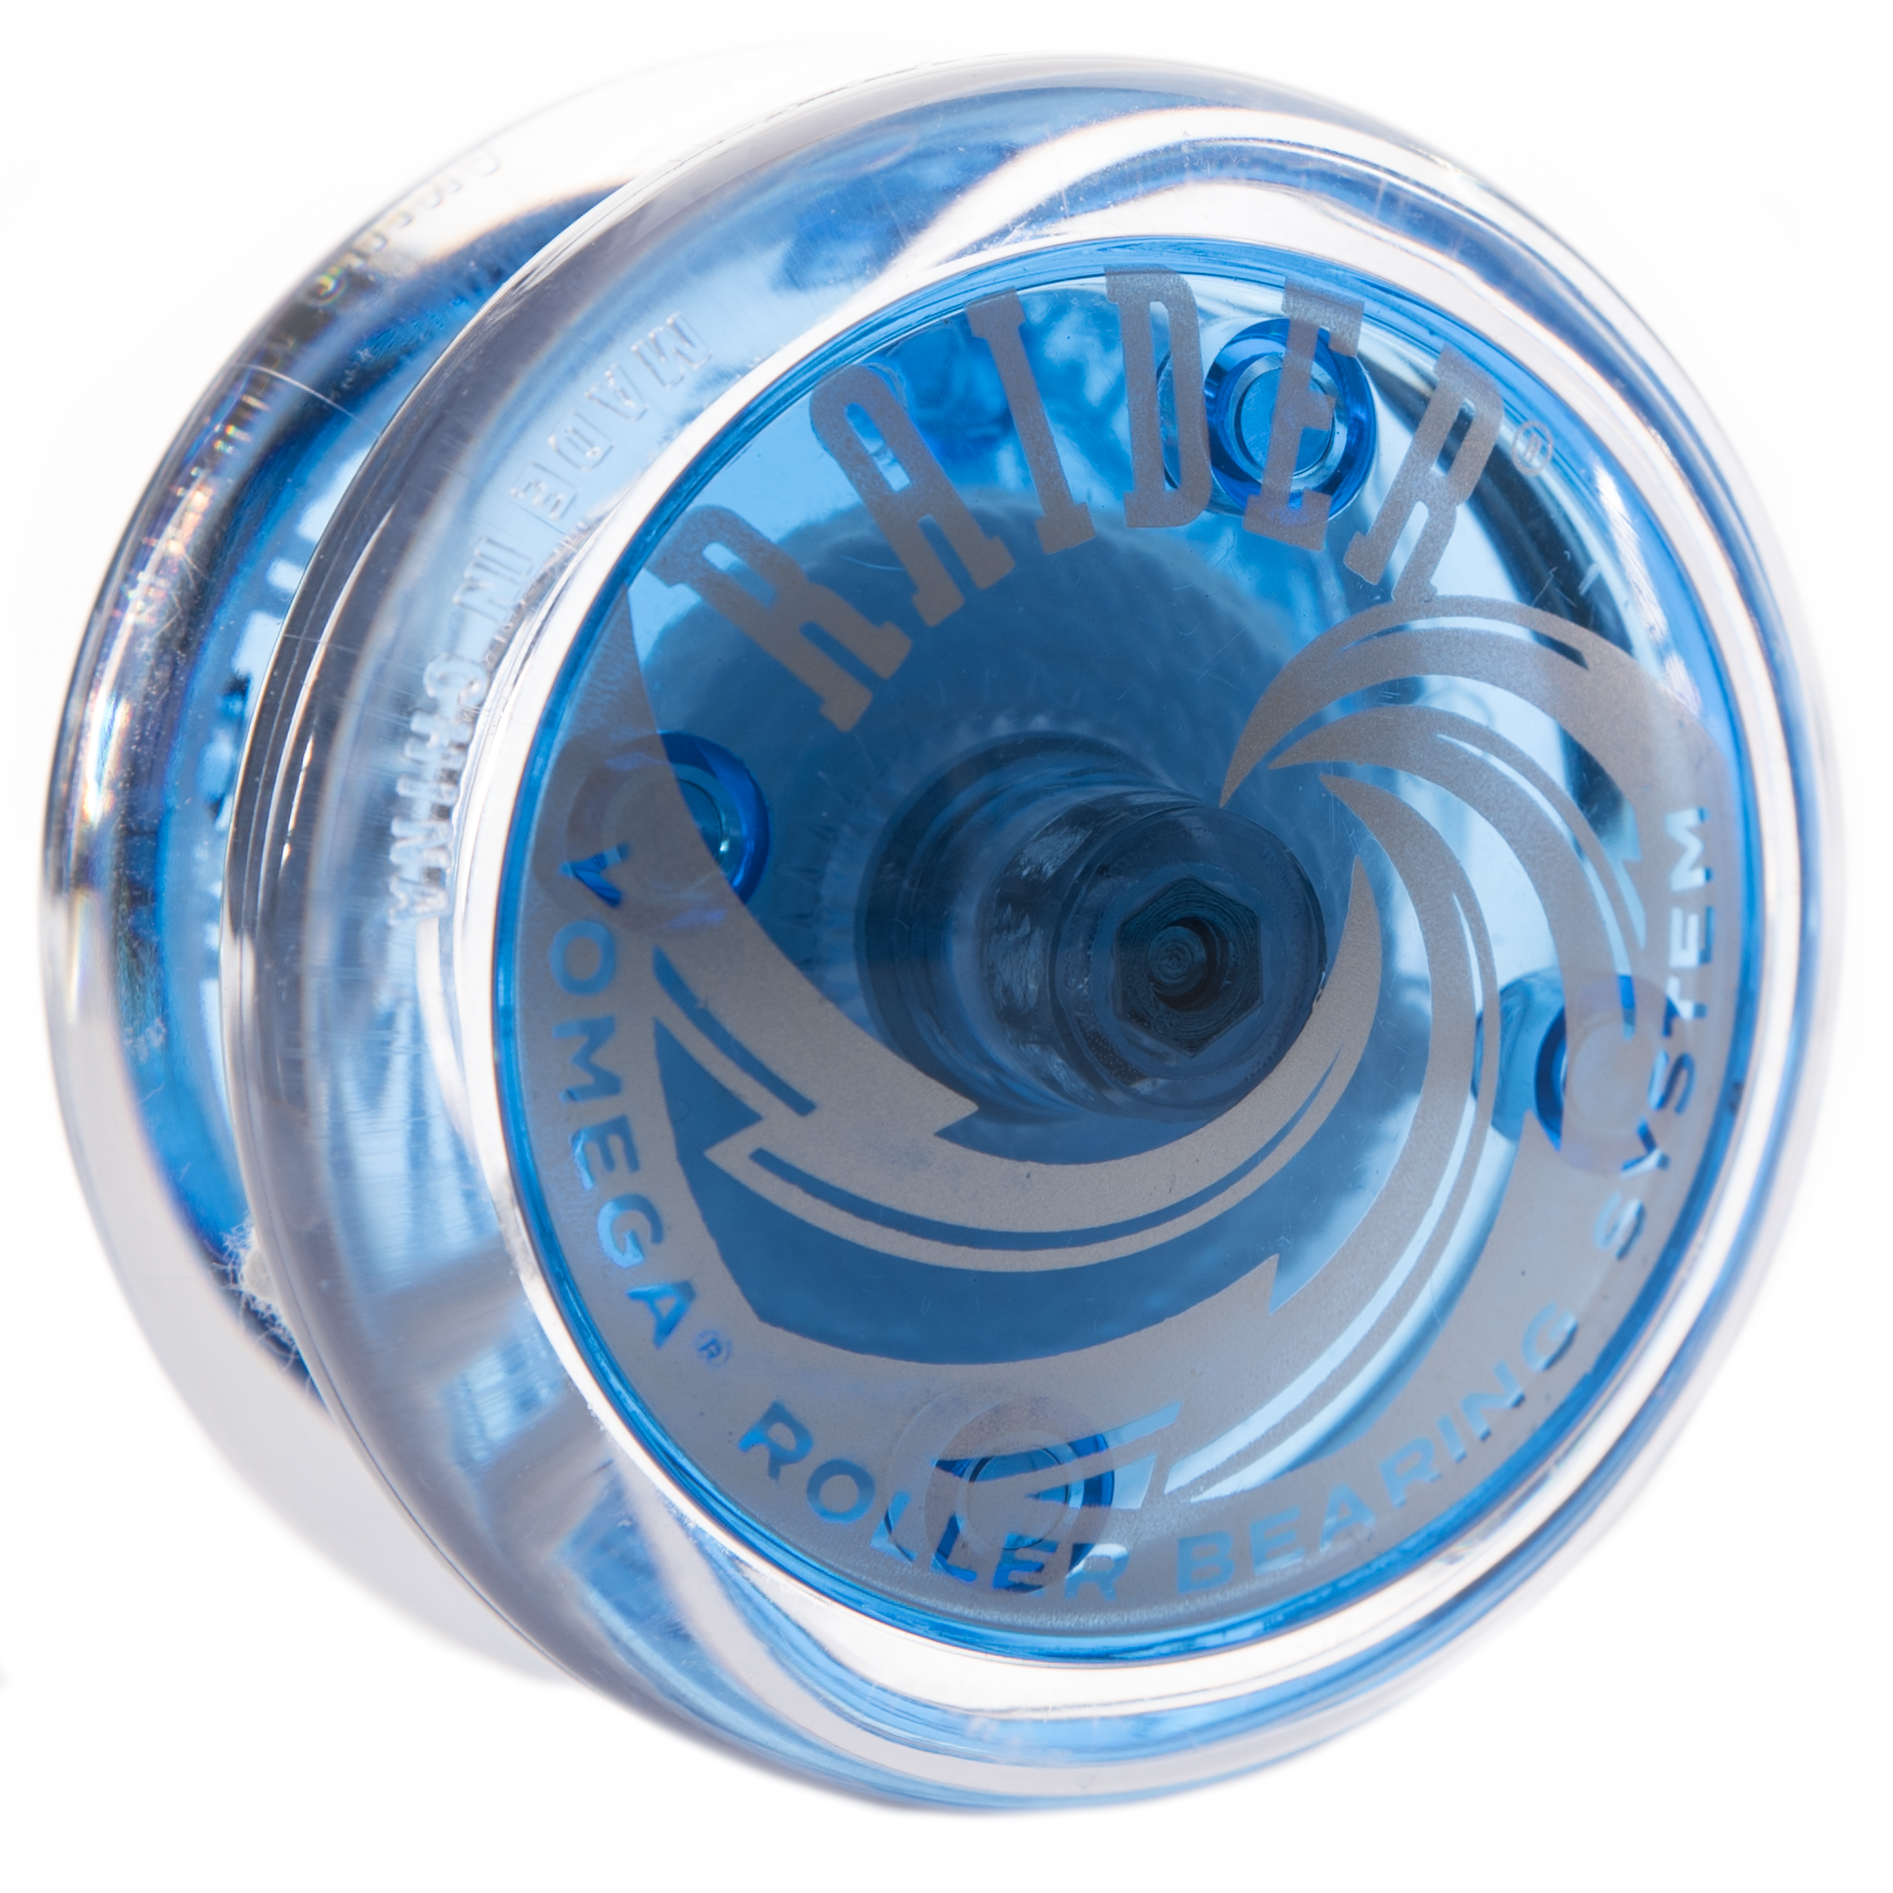 Raider Blue and Clear Yo Yo By Yomega